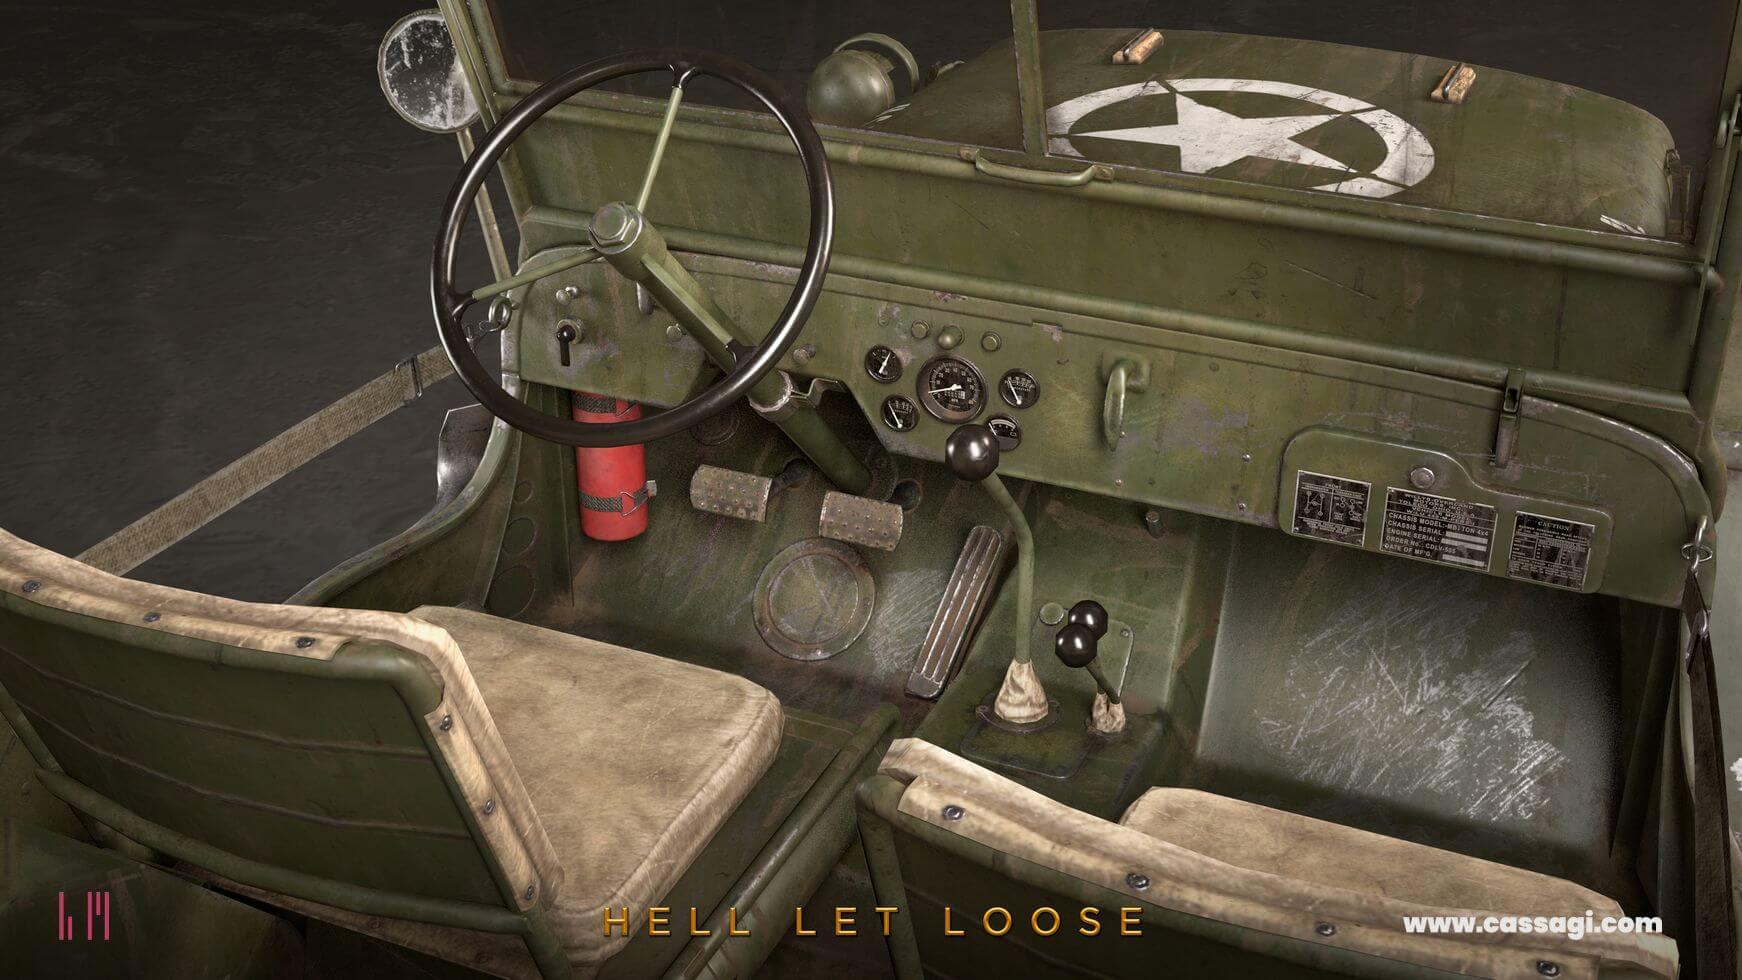 hell let loose Jeep Willis in game model interior detail